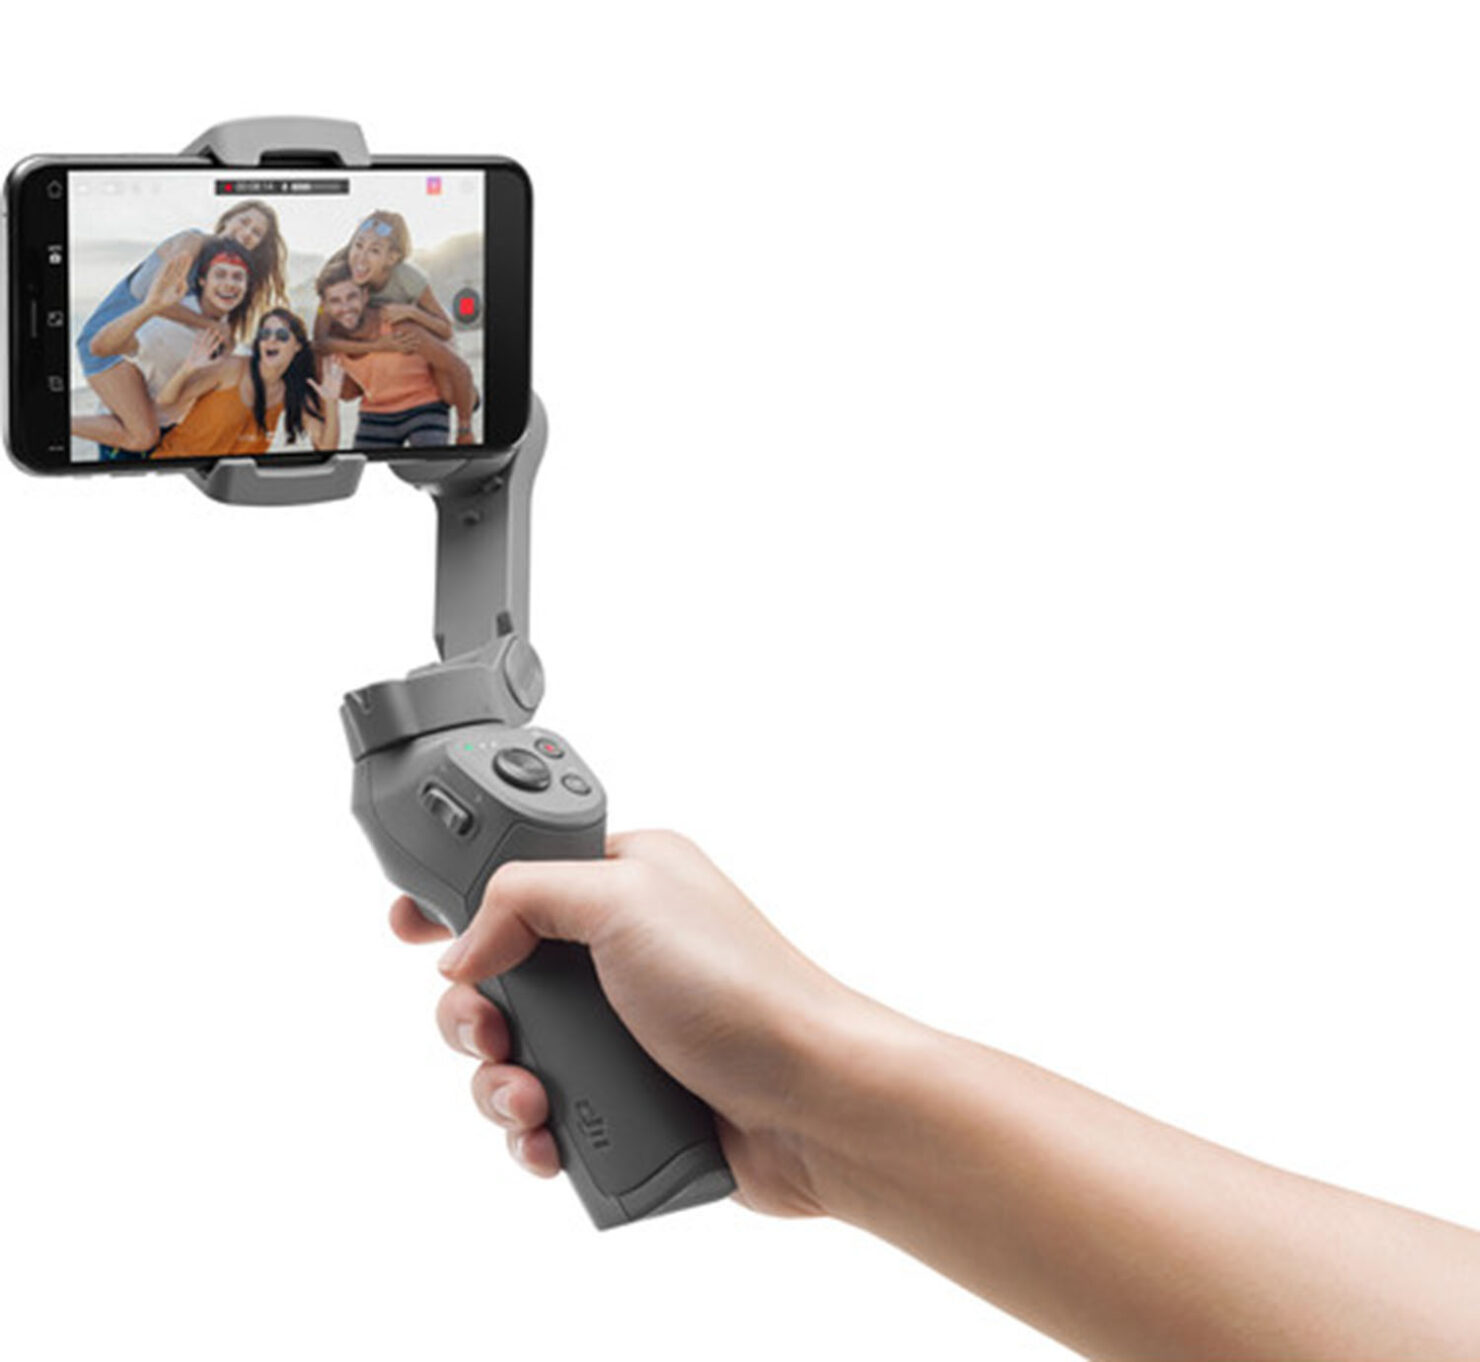 DJI has launched a new and more affordable Osmo Mobile 3